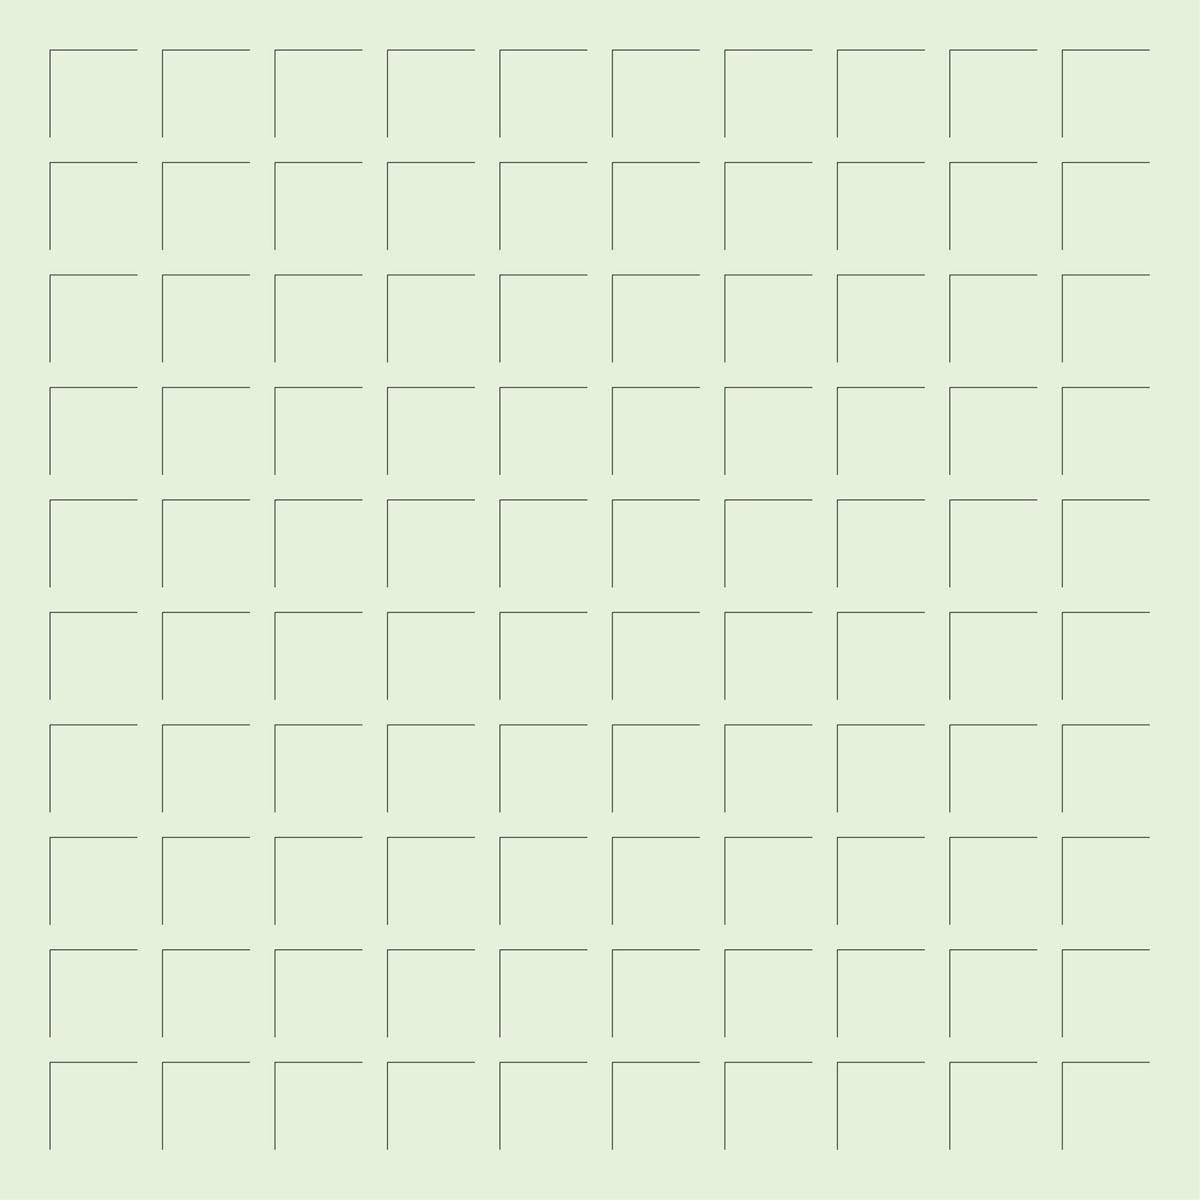 12x12 Grid Pictures To Pin